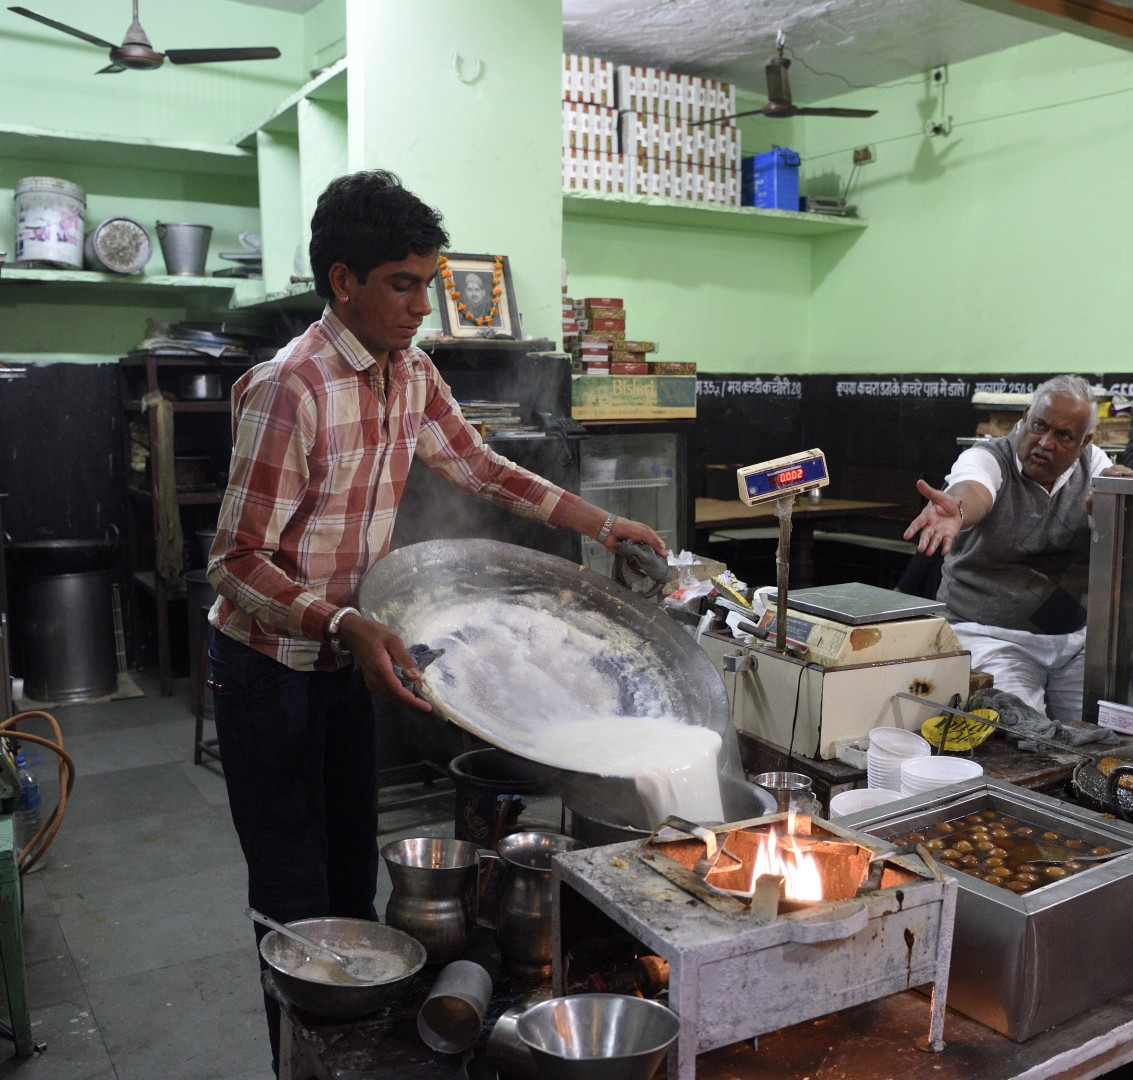 living india: steetfood the boss don't look satisfied